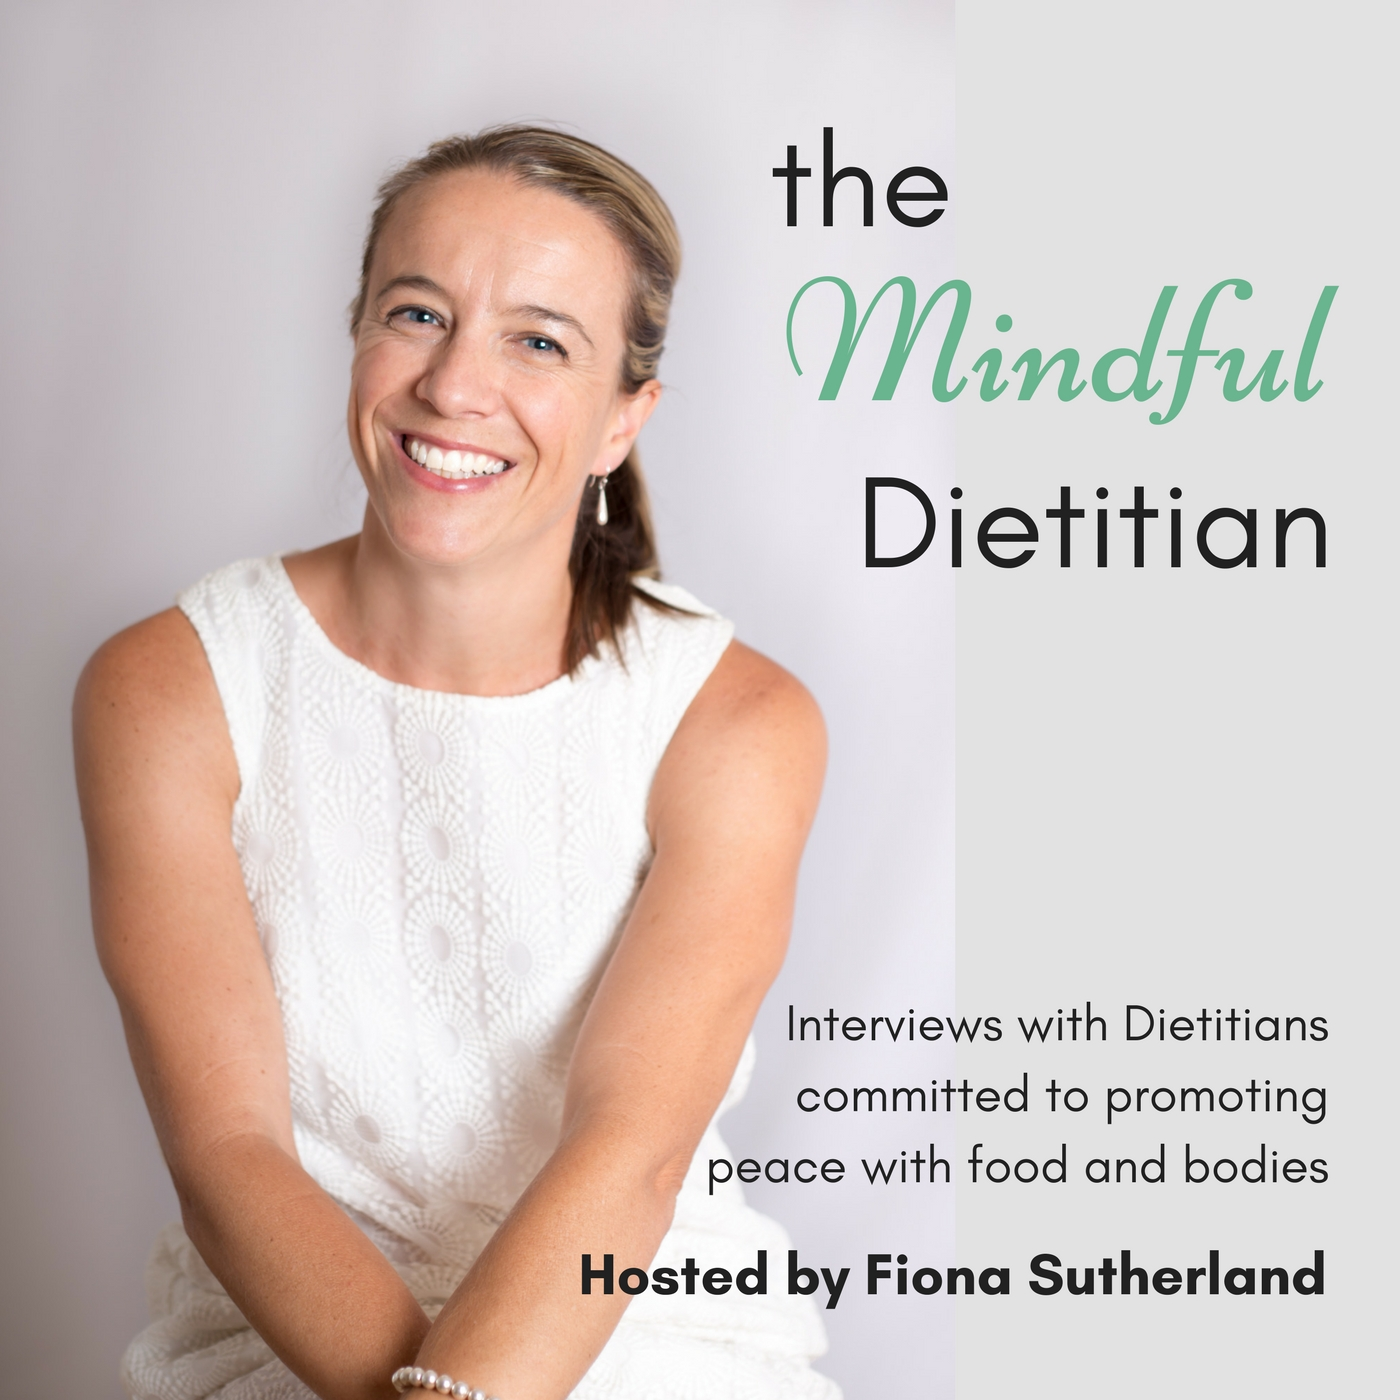 The Mindful Dietitian with Tom Scully